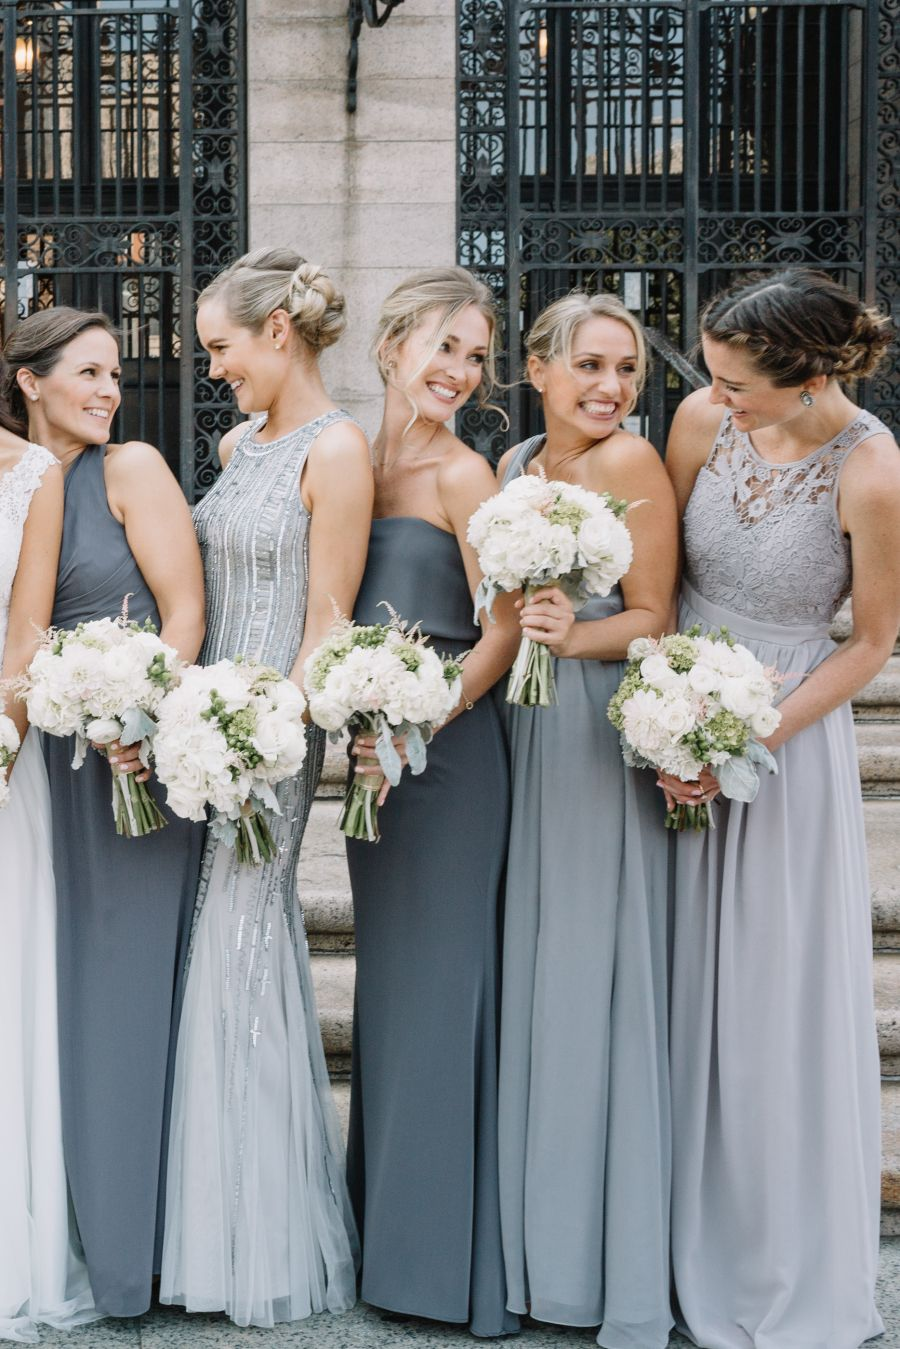 Charcoal and dove grey bridesmaids vintage glam bridesmaid charcoal and dove grey bridesmaids vintage glam bridesmaid dresses by jenny yoo gray gowns and suits pinterest gray bridesmaids vintage glam ombrellifo Choice Image